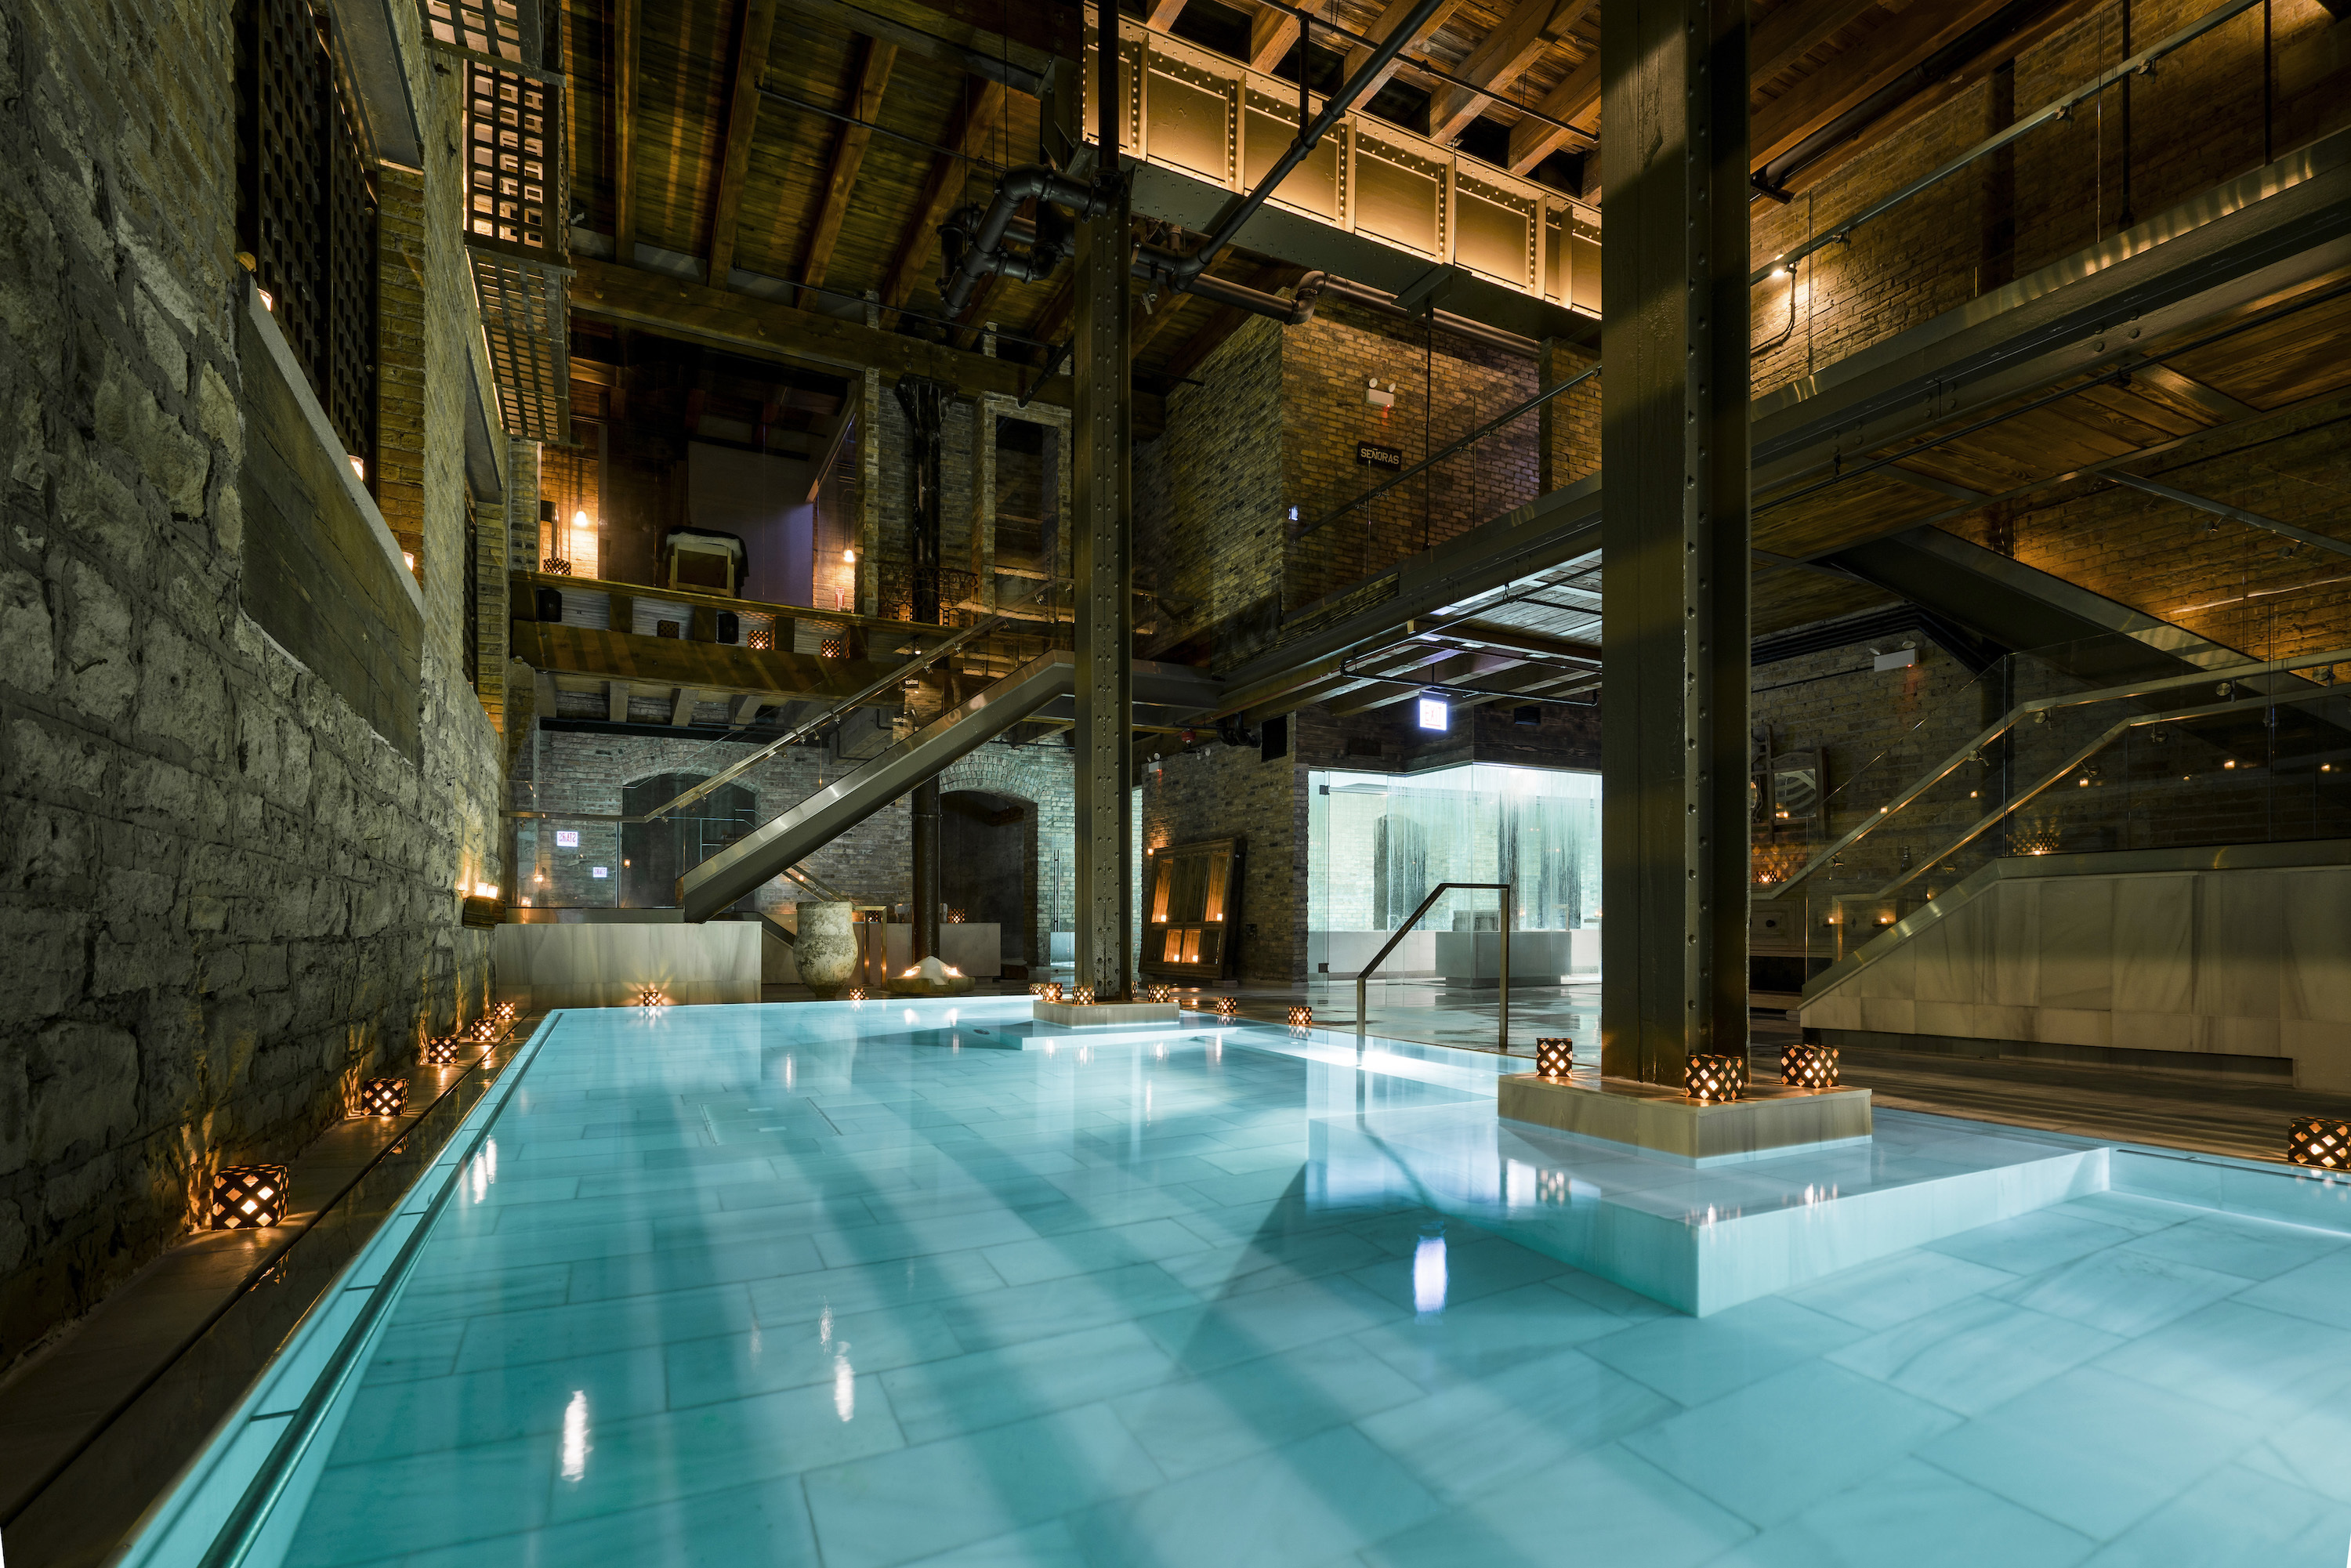 The 13 most relaxing spas in Chicago